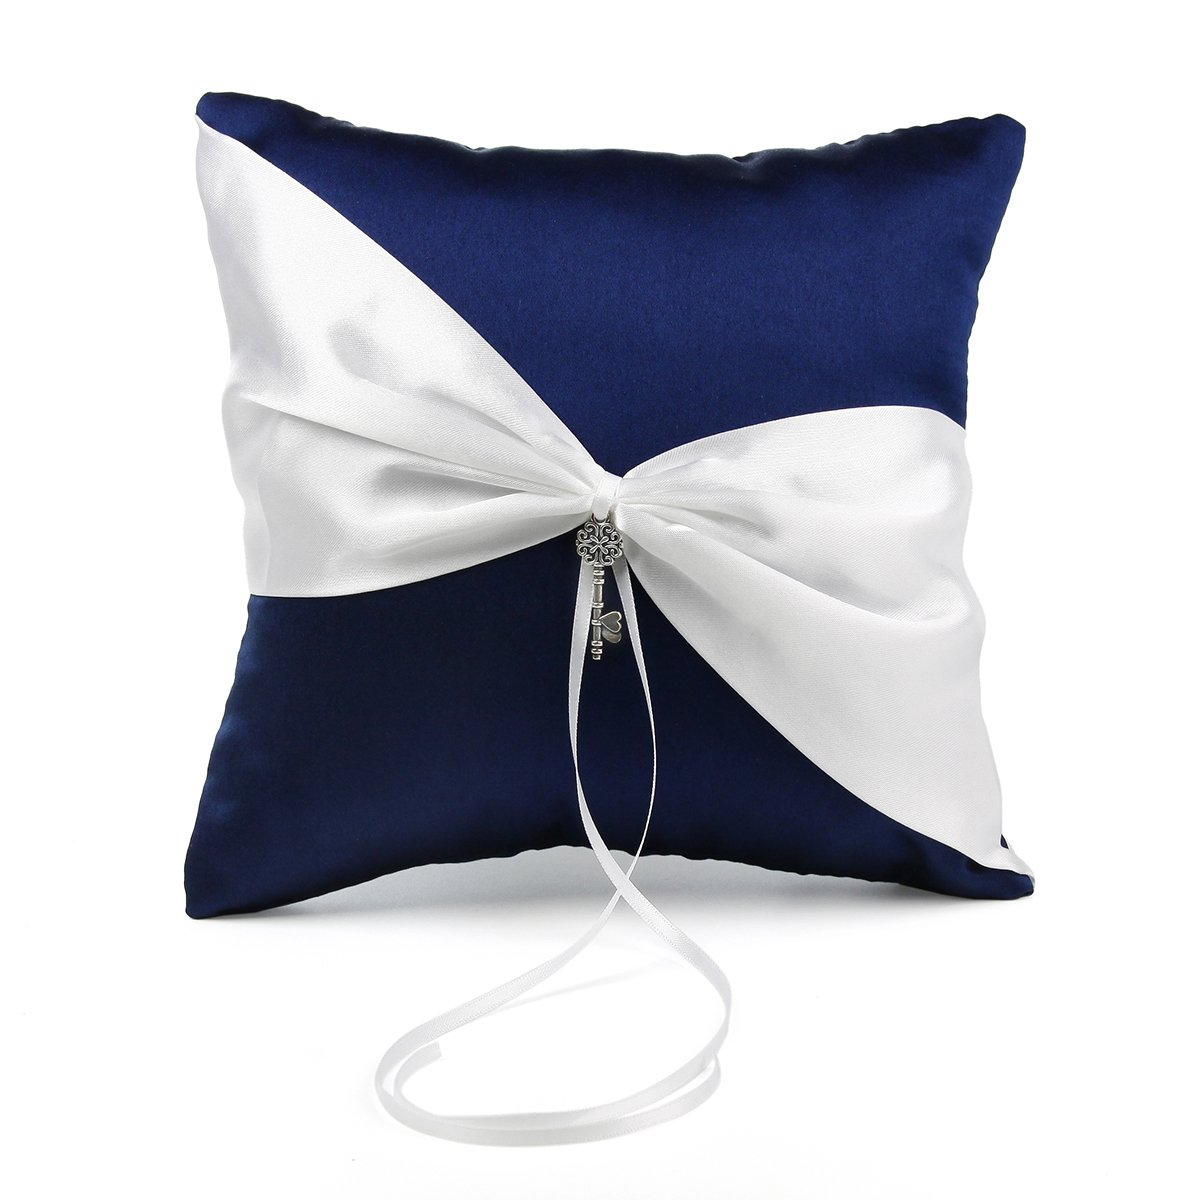 OnePlace Gifts Exclusive Navy Blue Satin Charms Wedding Ring Pillow Bearer 7.8'' (Key to Joined Hearts) by OnePlace Gifts